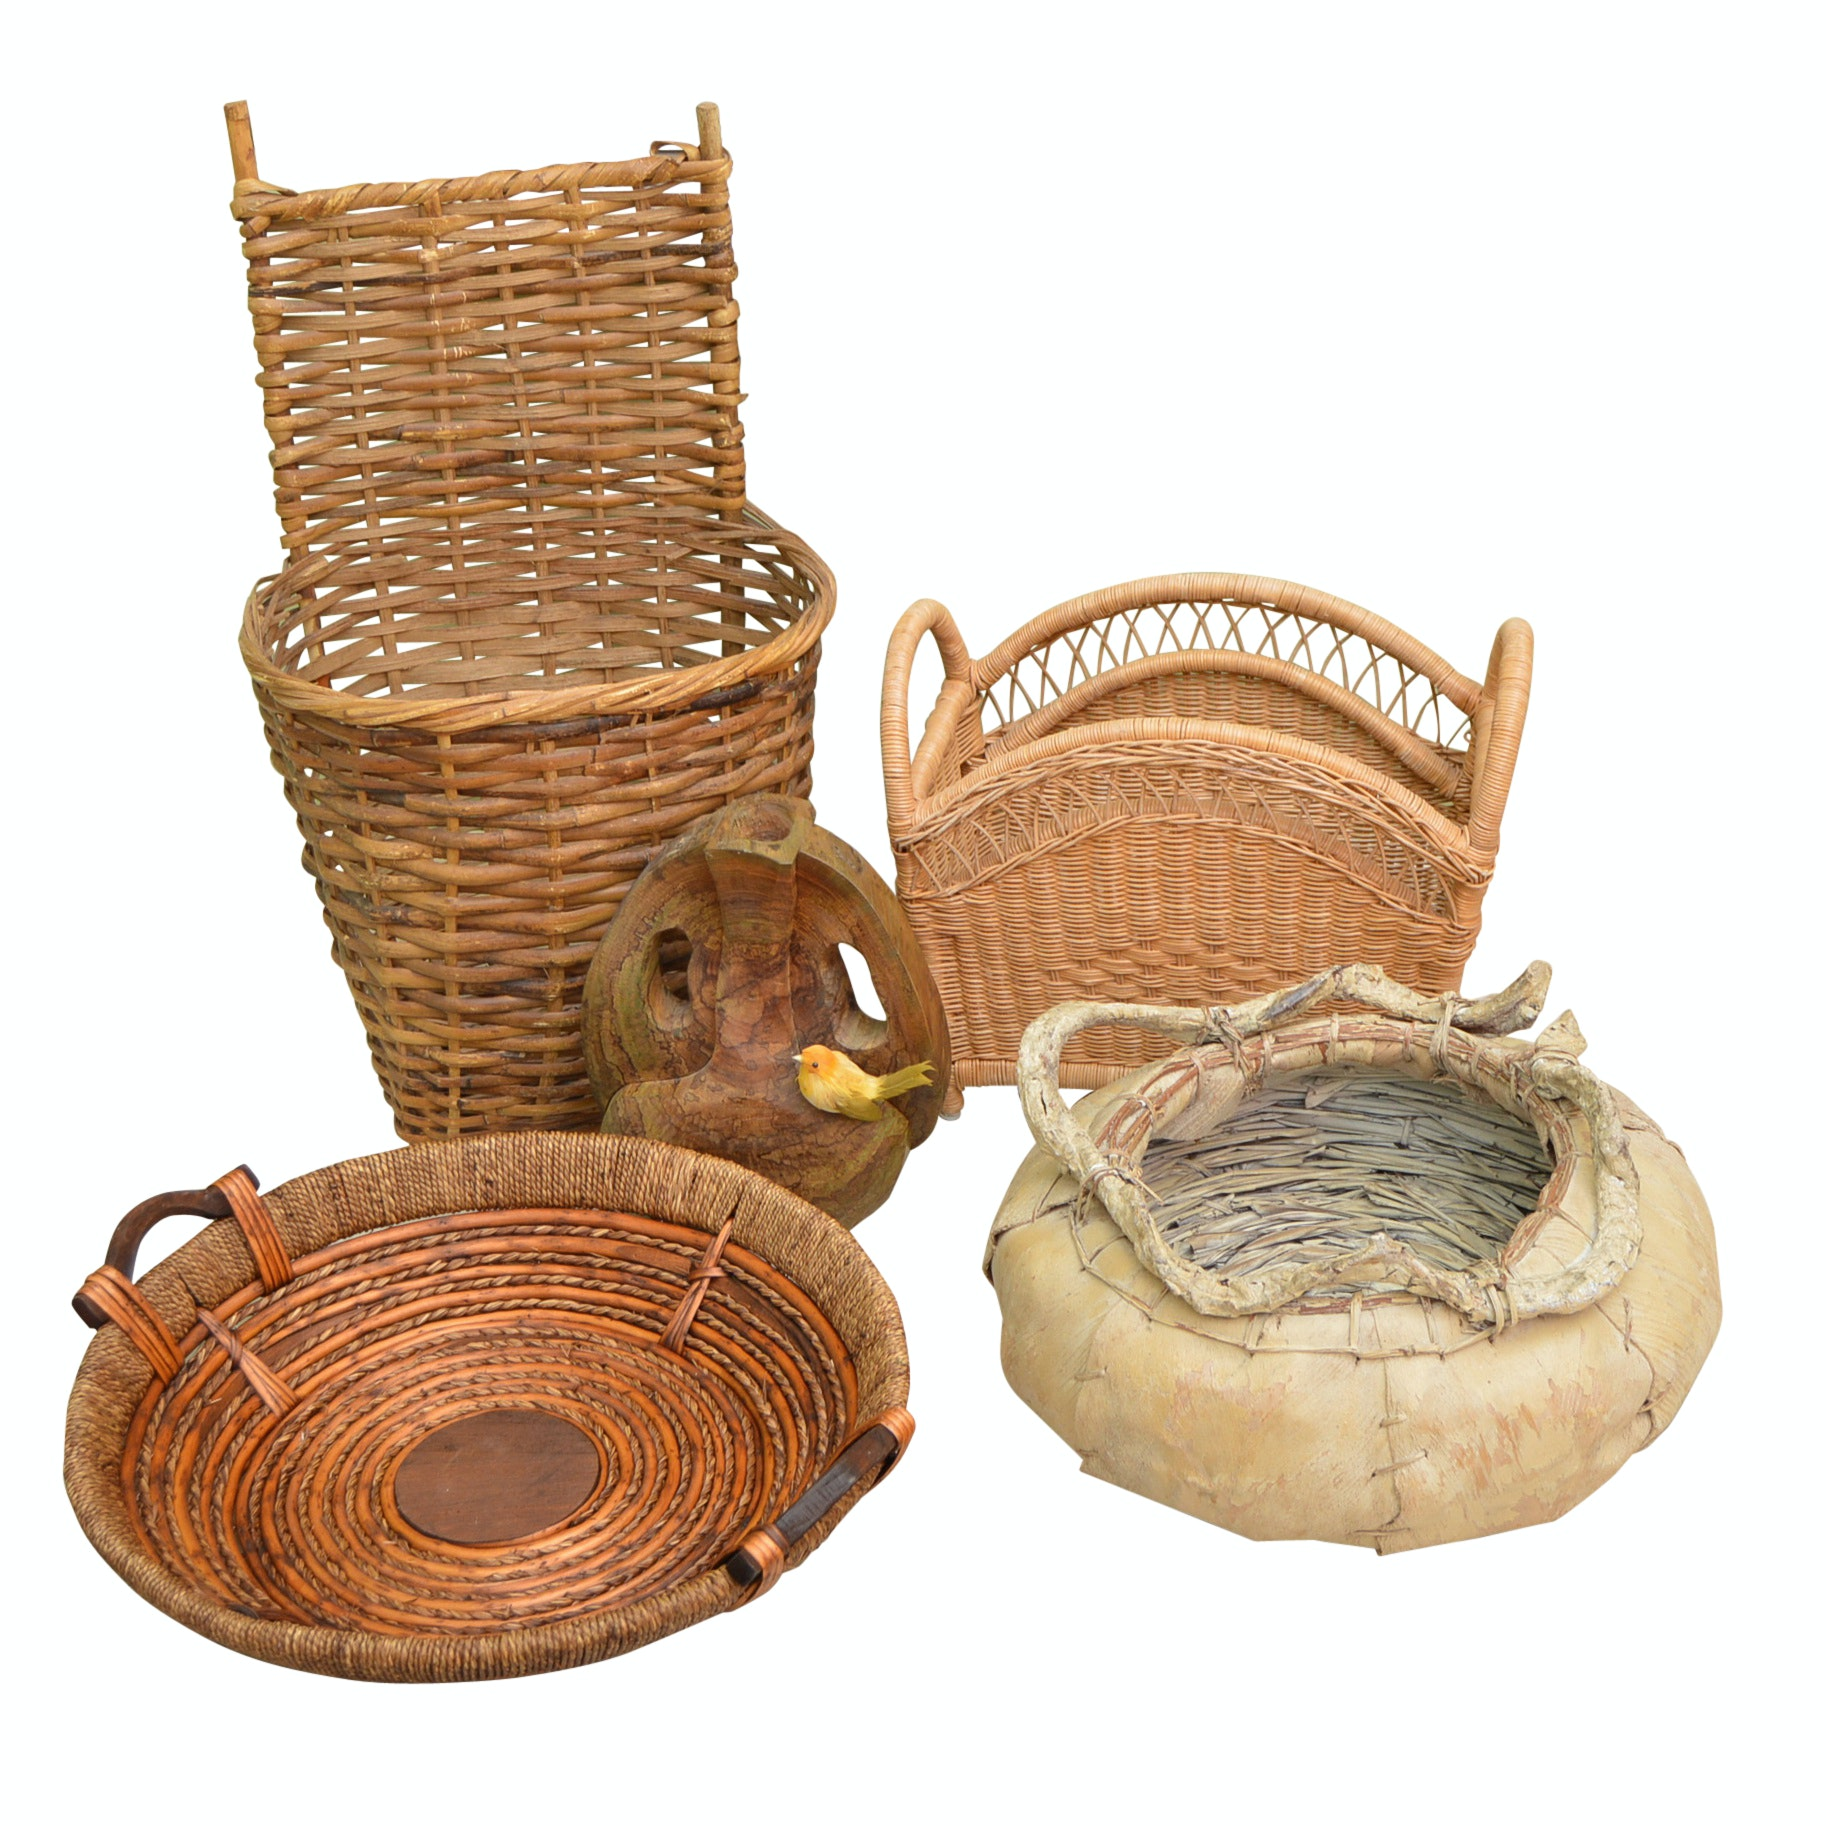 Collection of Baskets, with Signed Wood Vase and Birchbark Basket